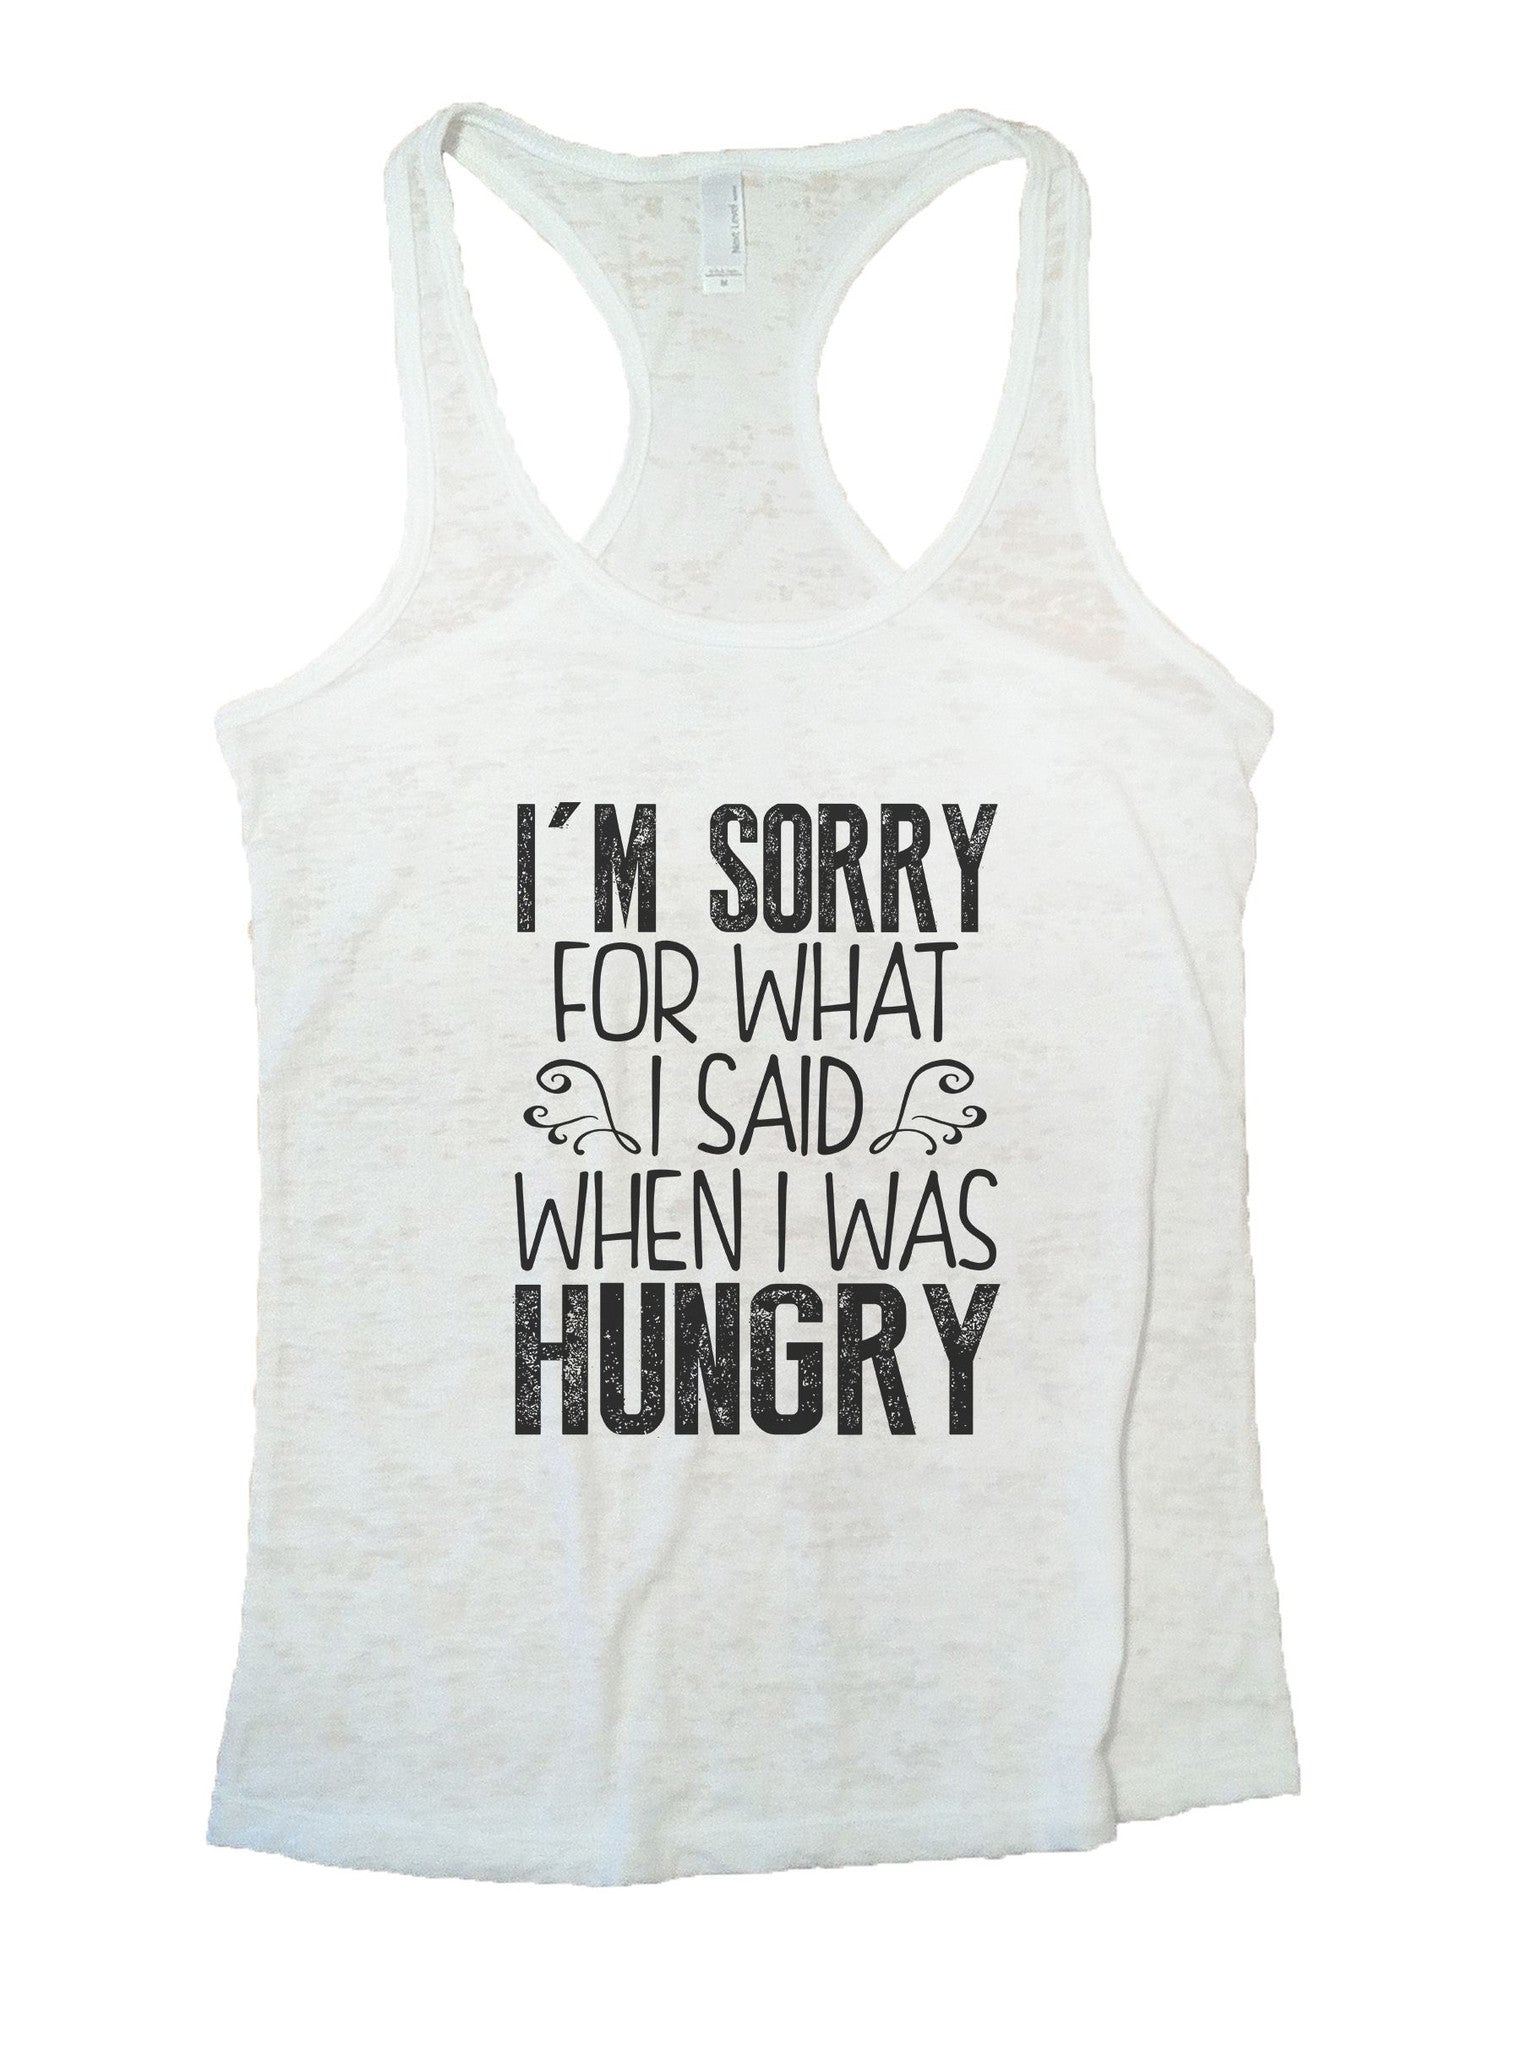 I'm Sorry For What I Said When I Was Hungry Burnout Tank Top By BurnoutTankTops.com - 952 - Funny Shirts Tank Tops Burnouts and Triblends  - 6